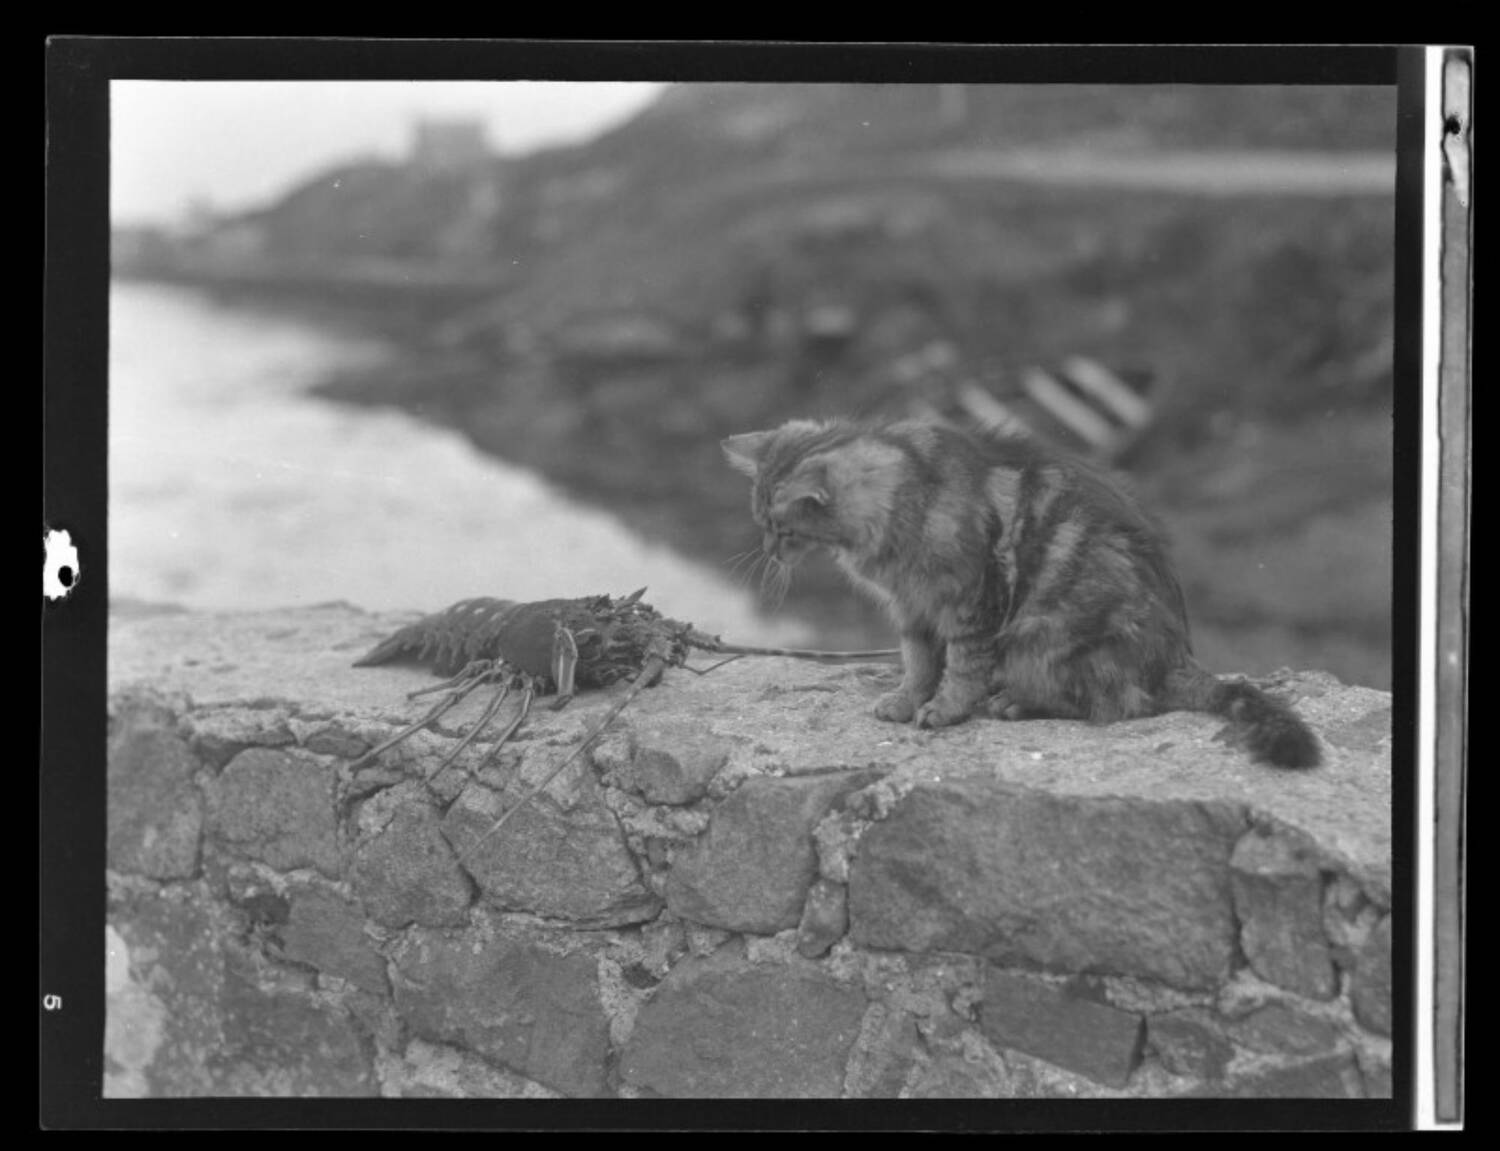 A black and white photograph of a large crayfish and a tabby cat sitting on a low stone wall beside a shoreline on Barra. The cat sits to the right, and leans down slightly to look at the crayfish.